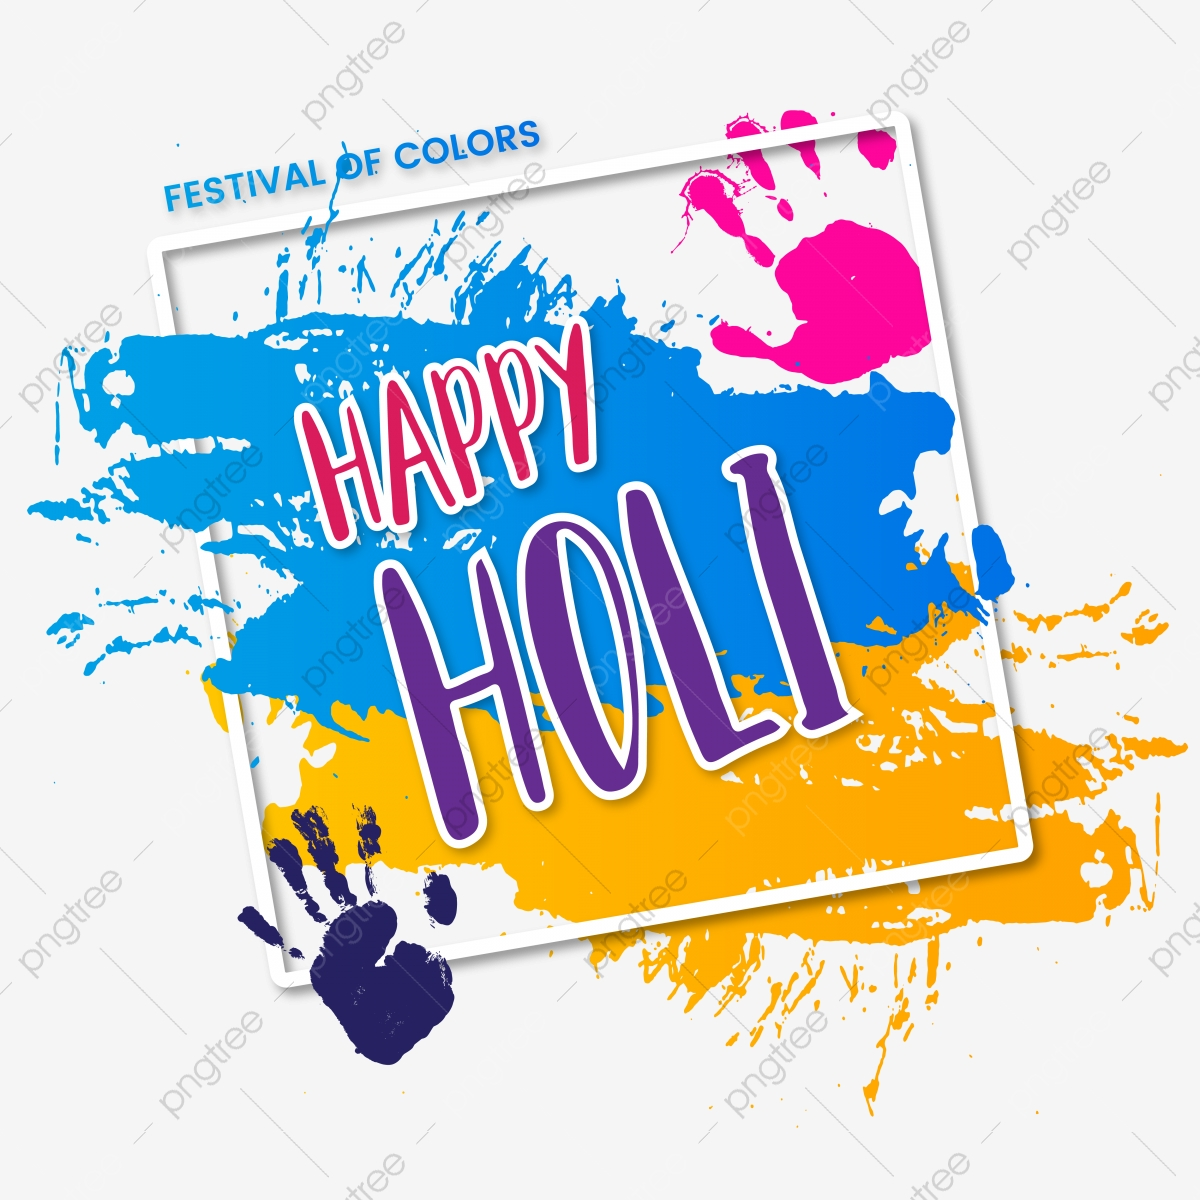 free download Vector color happy. Festival of colors holi